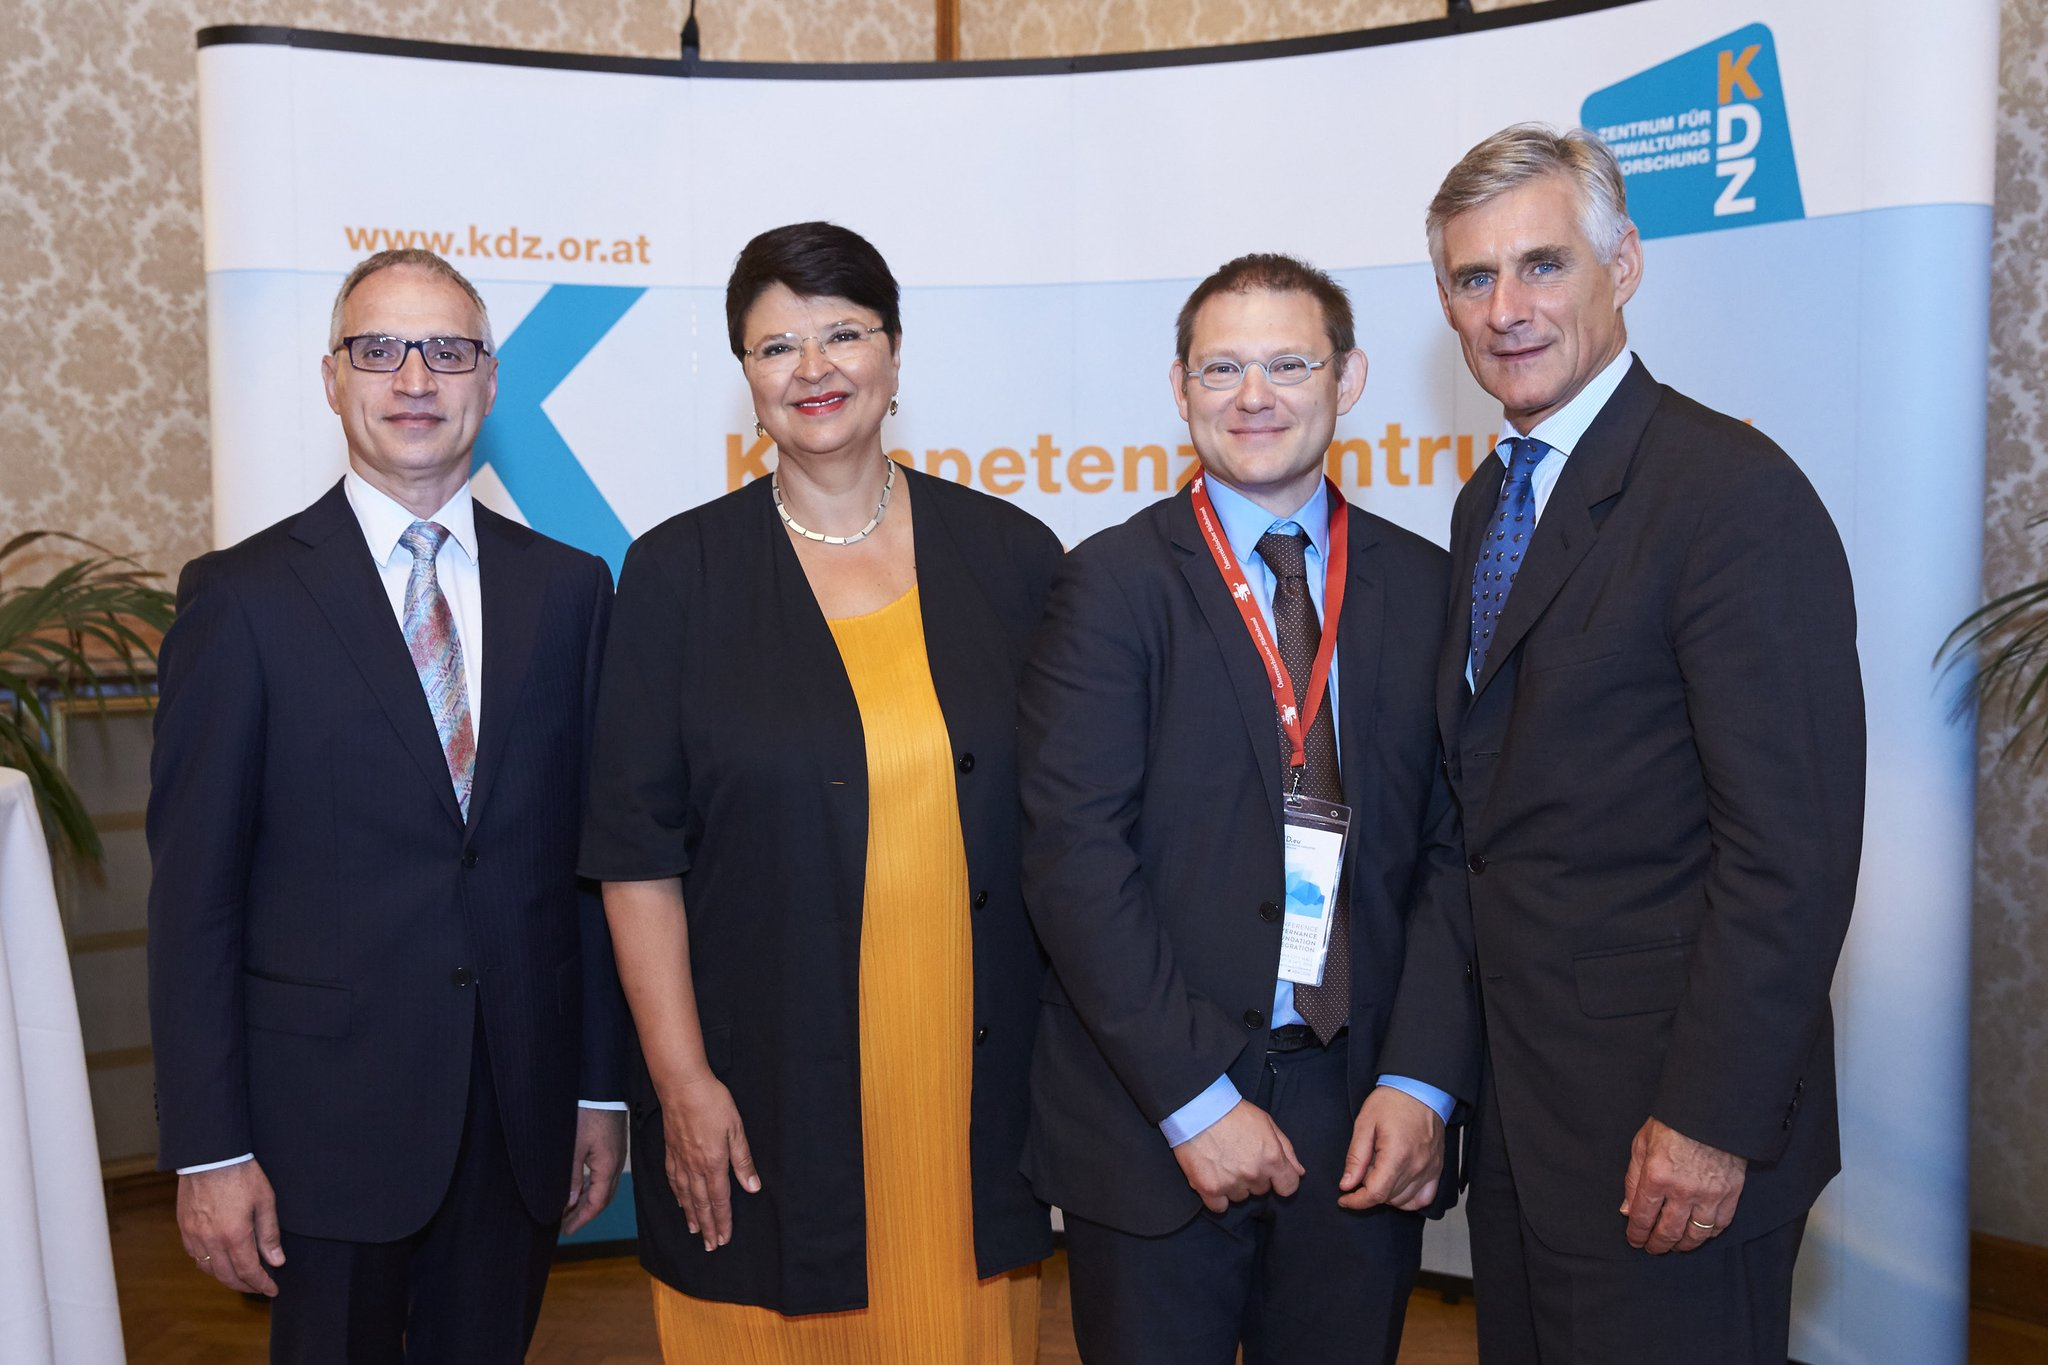 """From left to right: Goran Svilanovic, RCC Secretary General; Renate Brauner, Member of Vienna's Government, Executive City Councillor for Finance, Economy & International Affairs; Thomas Prorok, KDZ_Austria Deputy Managing  Director; and Michael Linhart, Secretary-General of the Austrian Foreign Ministry; at the """"Public Governance as the Foundation of European Integration"""" conference in Vienna on 23 June 2016. (Photo: @KDZ_Austria)"""